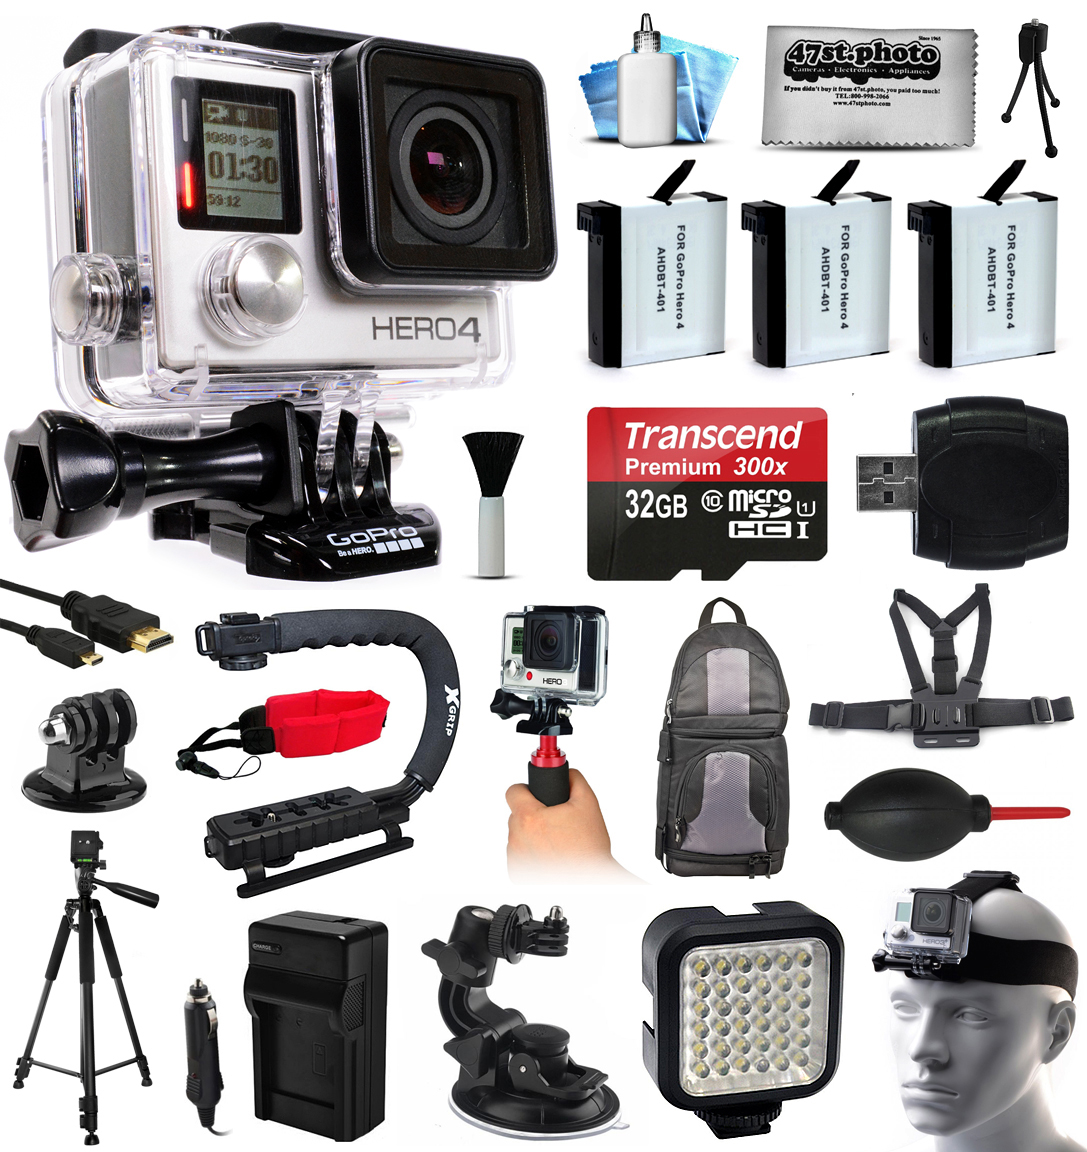 GoPro HERO4 Hero 4 Black Edition 4K Action Camera Camcorder with 32GB MicroSD, 3x Battery, Charger, Backpack, Chest Harness, Handle, Tripod, Car Mount, LED Light, Helmet Strap, Cleaning Kit(CHDHX-401)